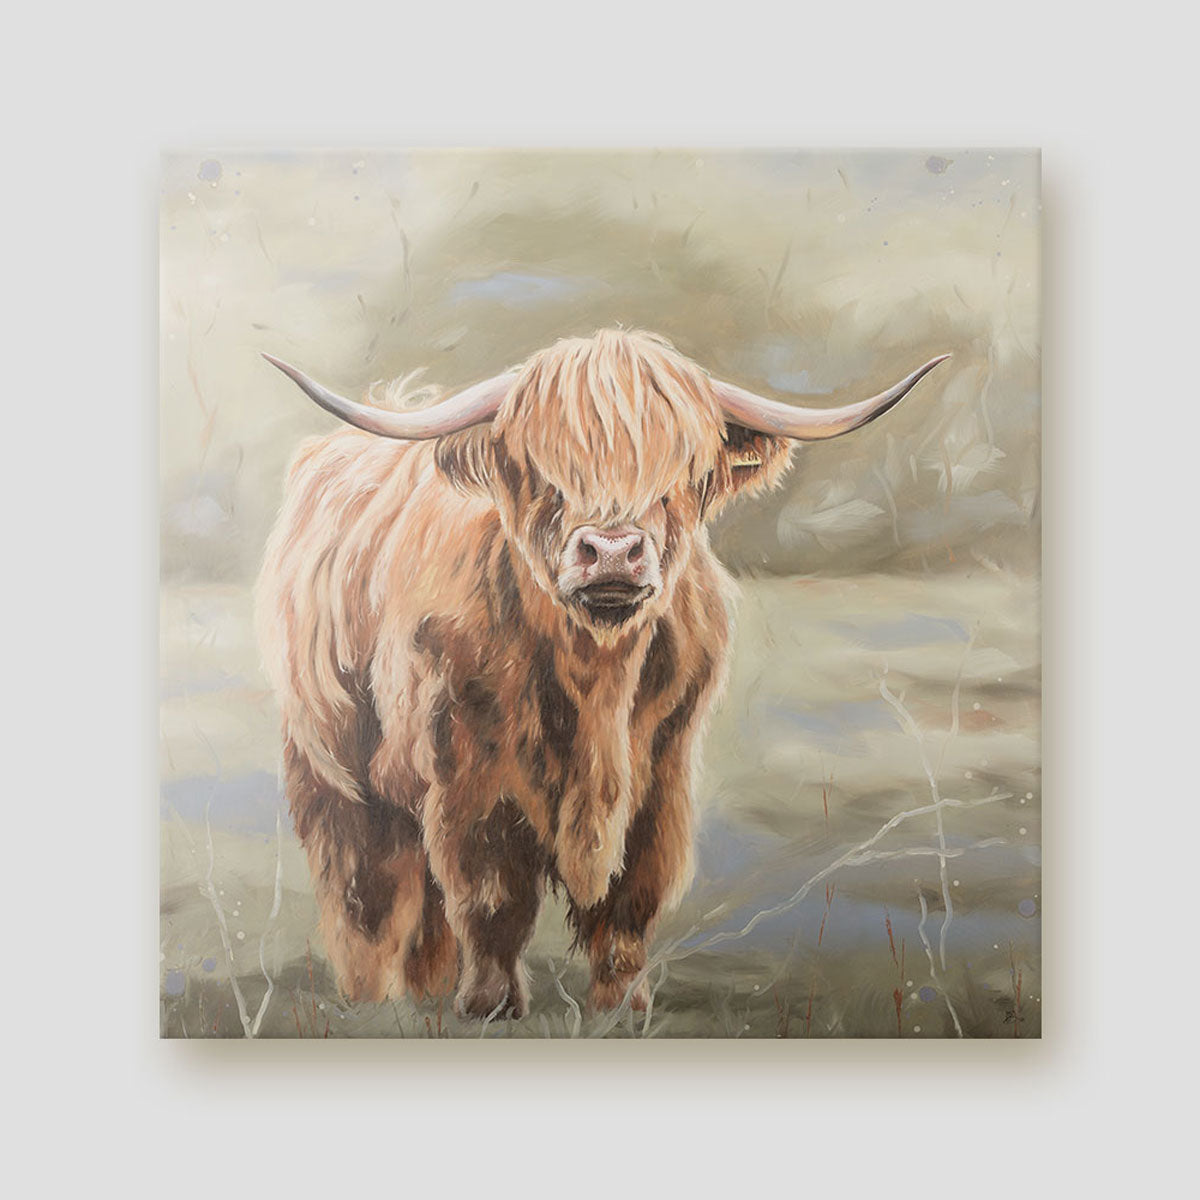 Bonnie Highland cow canvas